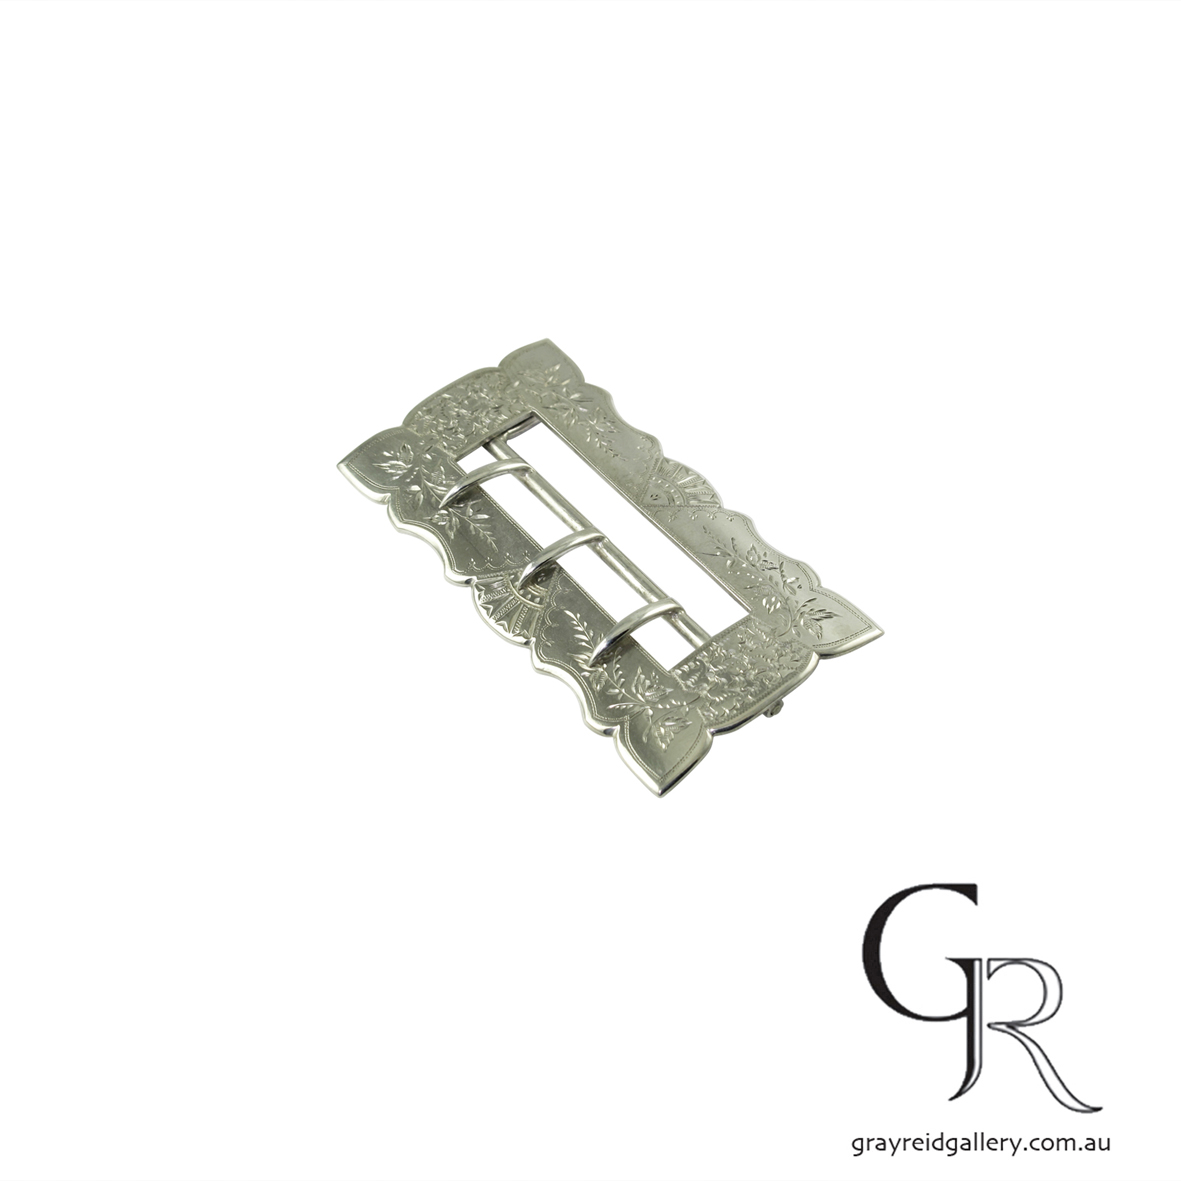 antiques and collectables melbourne sterling silver belt buckle Gray Reid Gallery 9.jpg